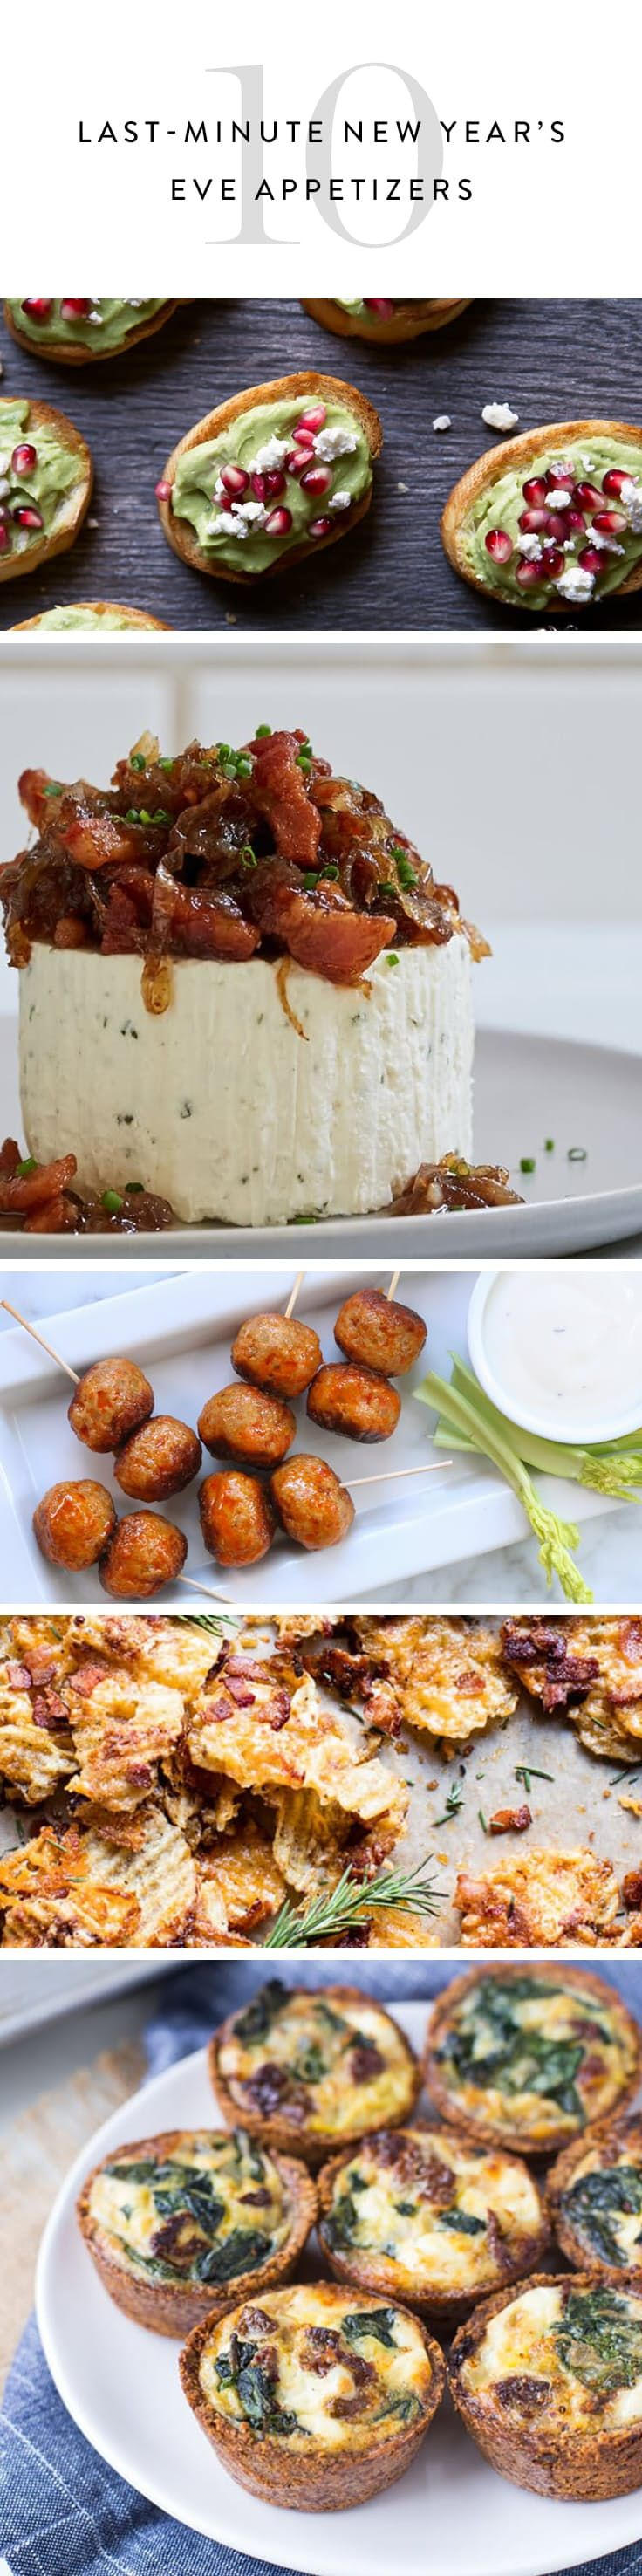 Best 25 new years appetizers ideas on pinterest new for Appetizer ideas for new years eve party